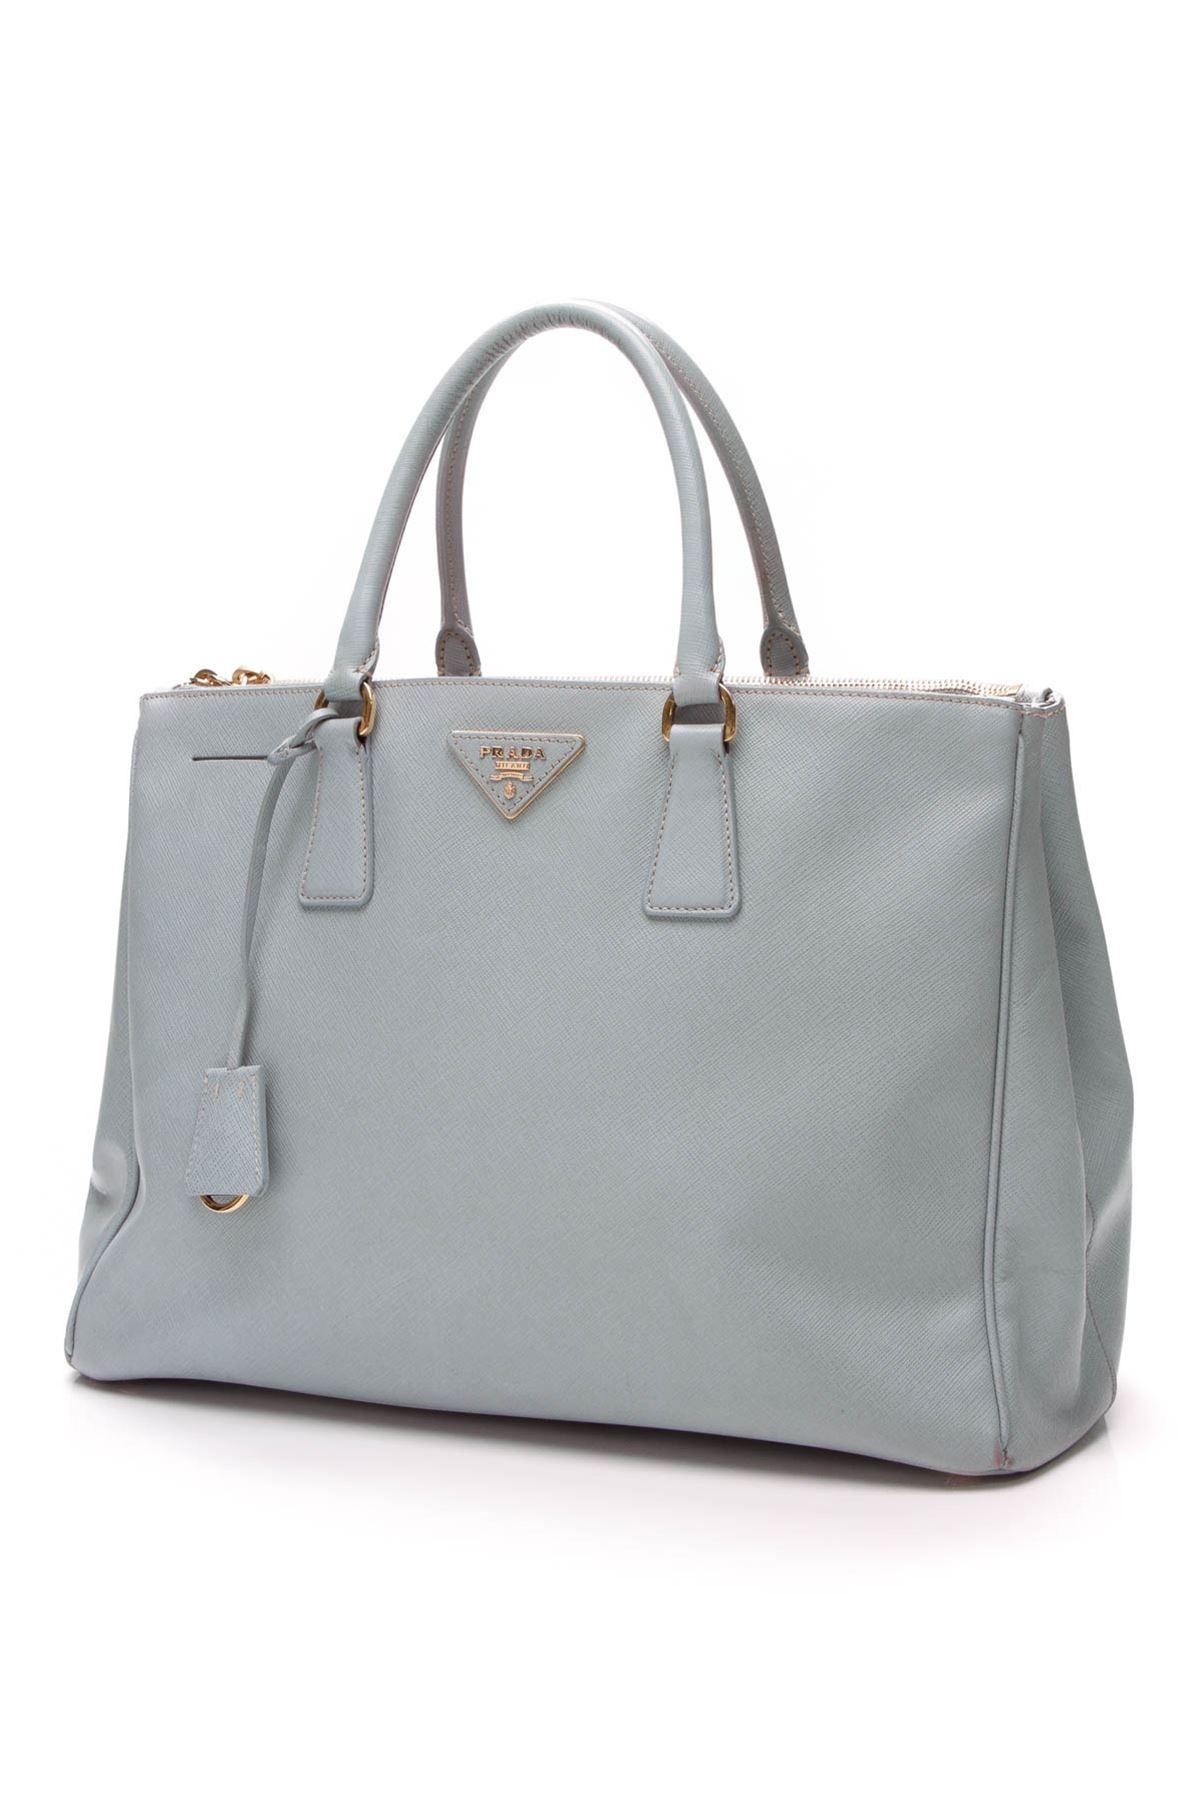 bcb04d867e70 ... fashionable outlet 33d31 38b8f; store prada tote in light blue lago  40323 29f38